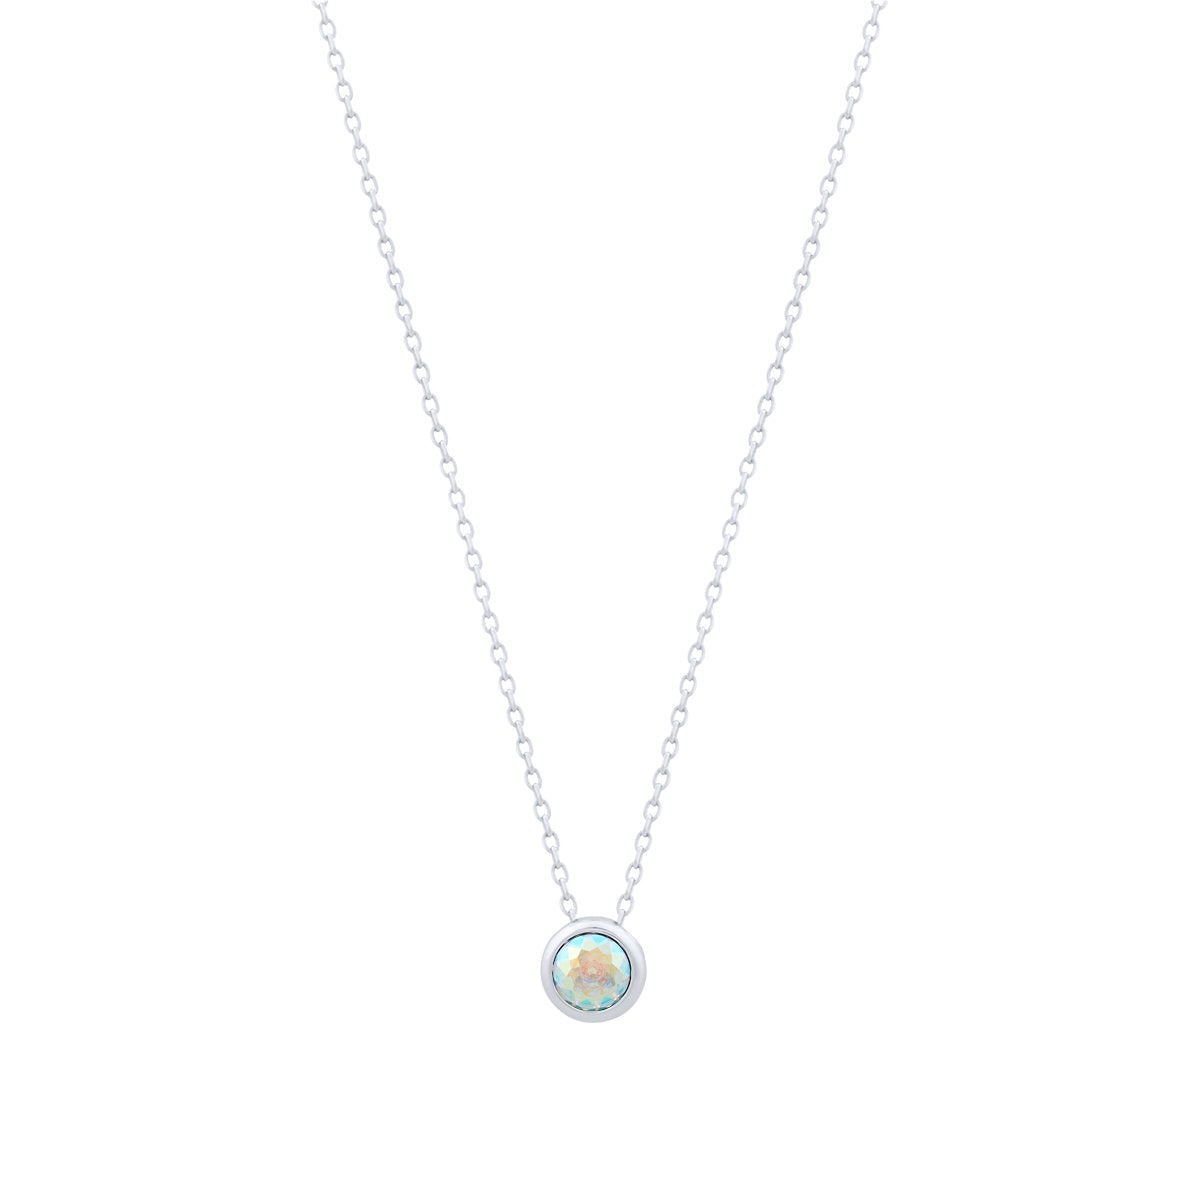 Nassau Necklace Silver Aurora Borealis JOY OF SPARKLE FOREVER CRYSTALS